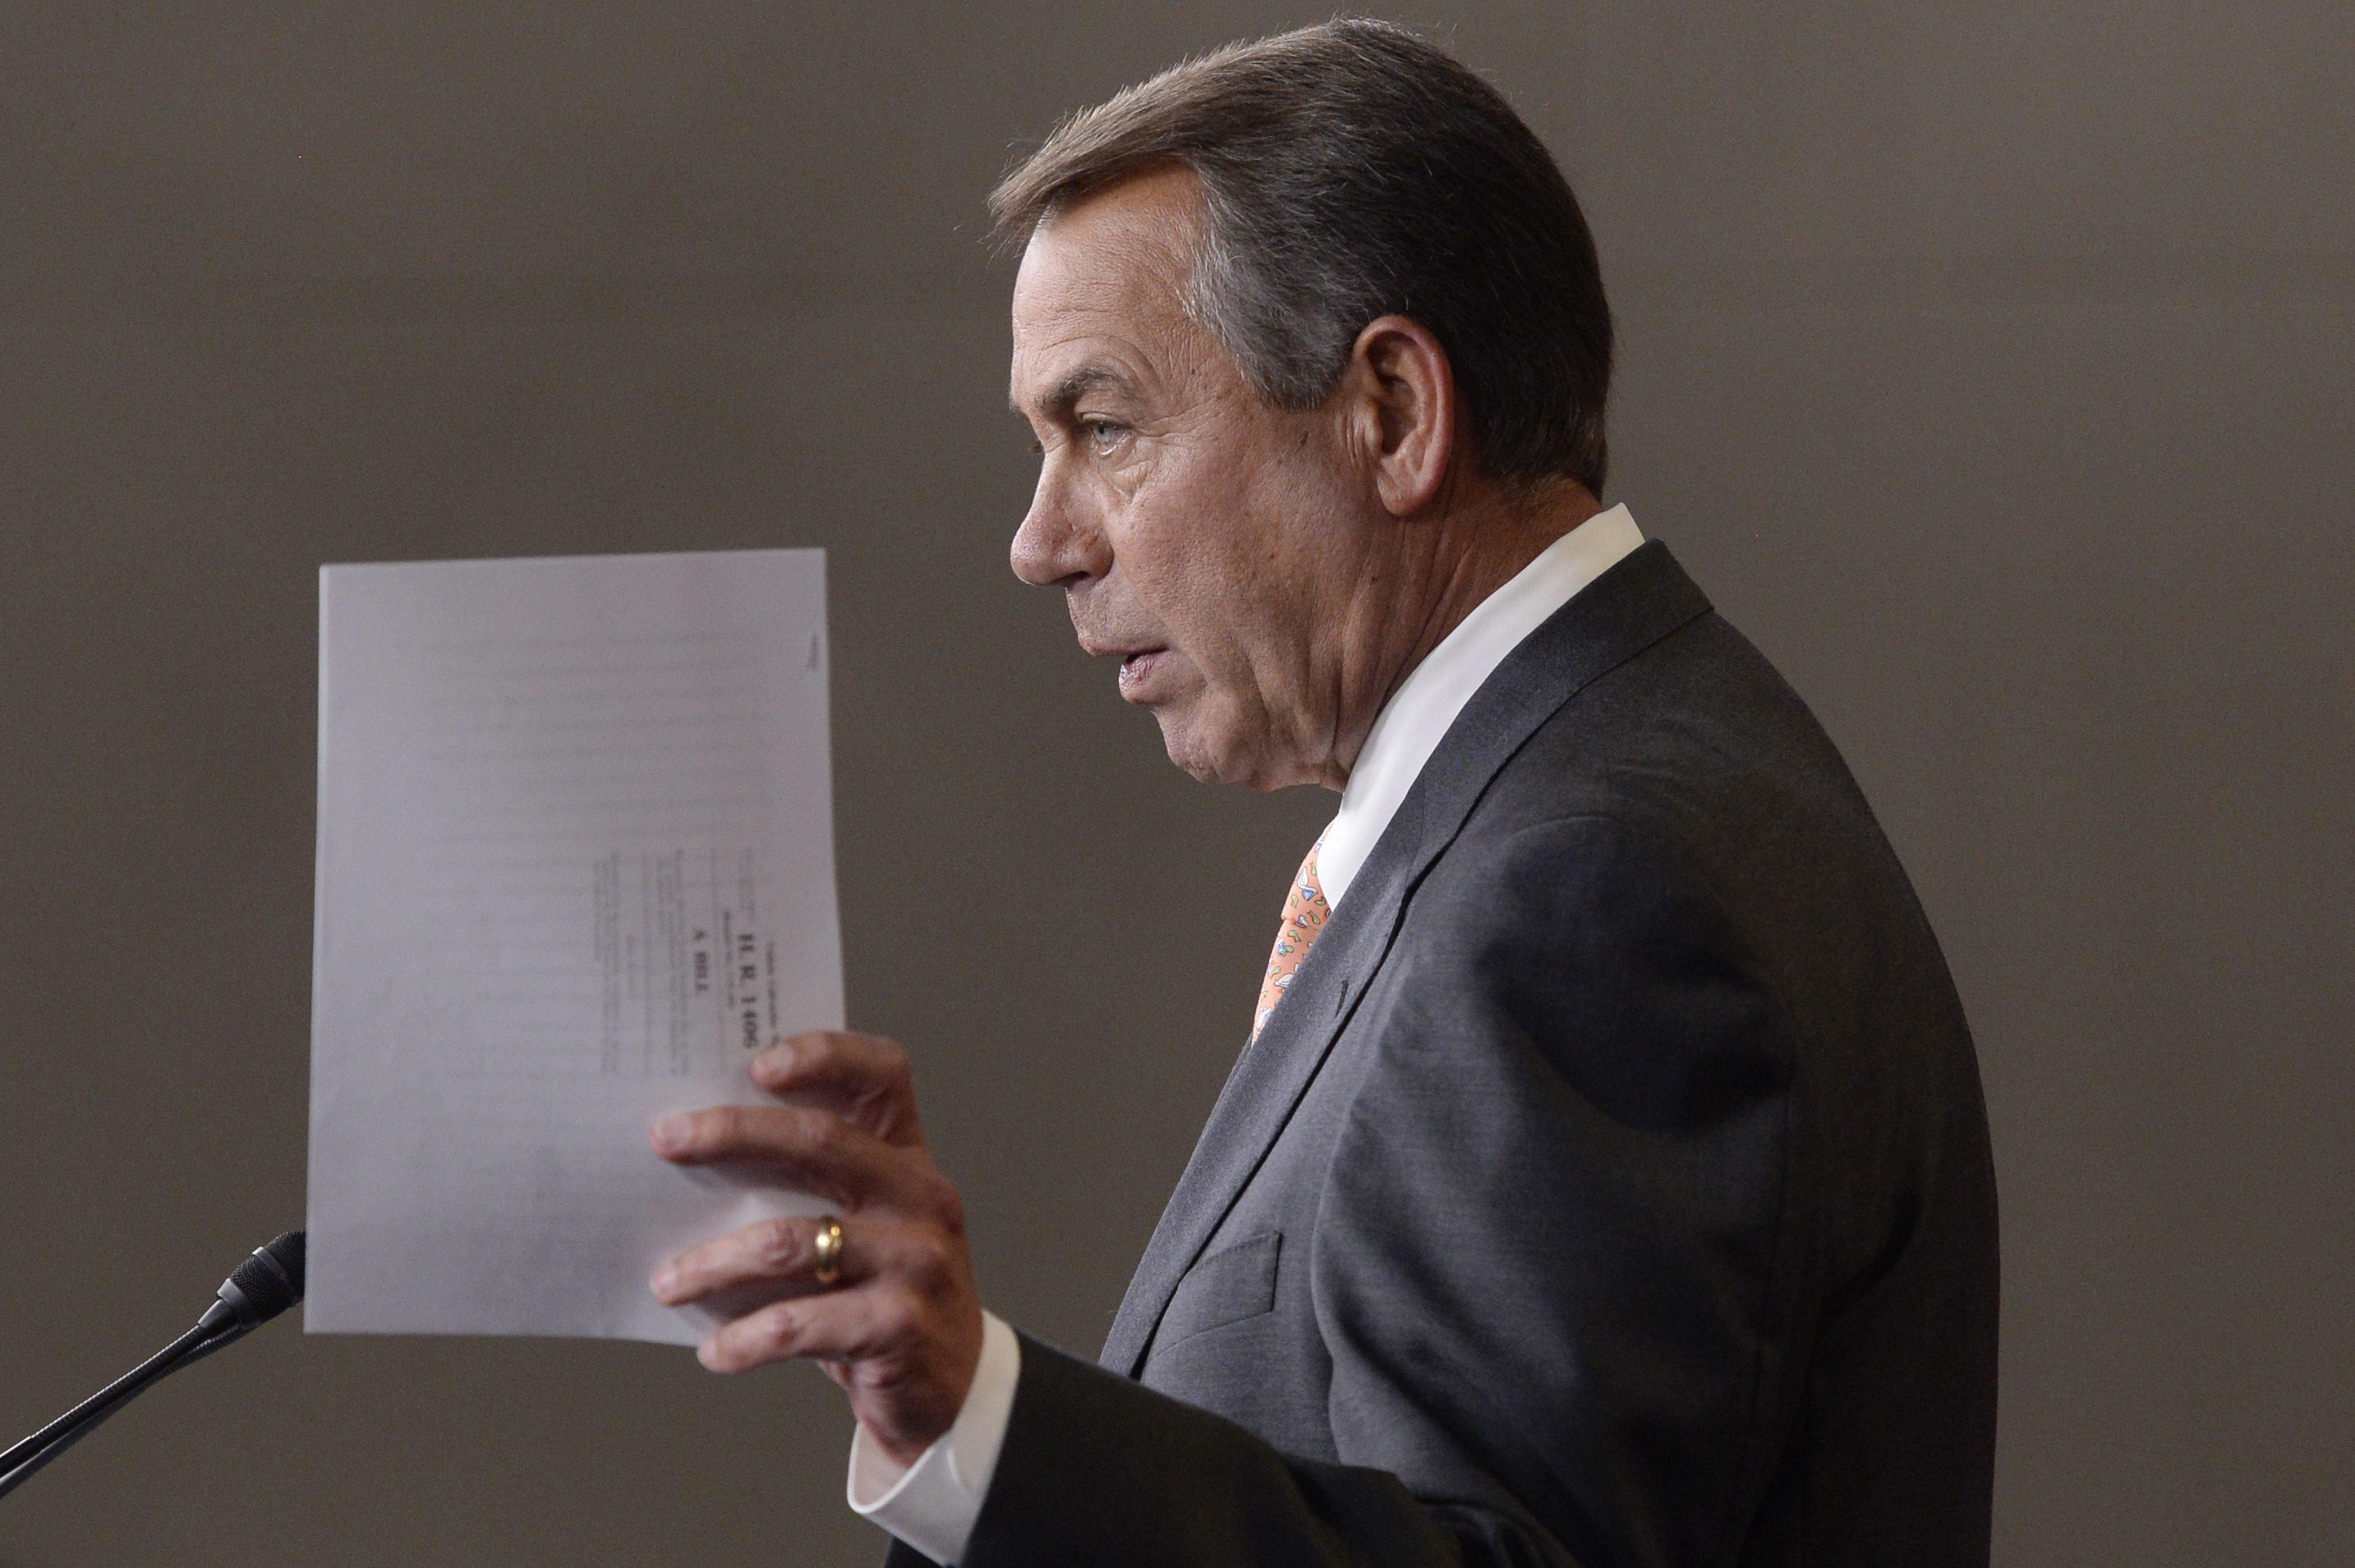 Image: Speaker of the House and Republican from Ohio John Boehner